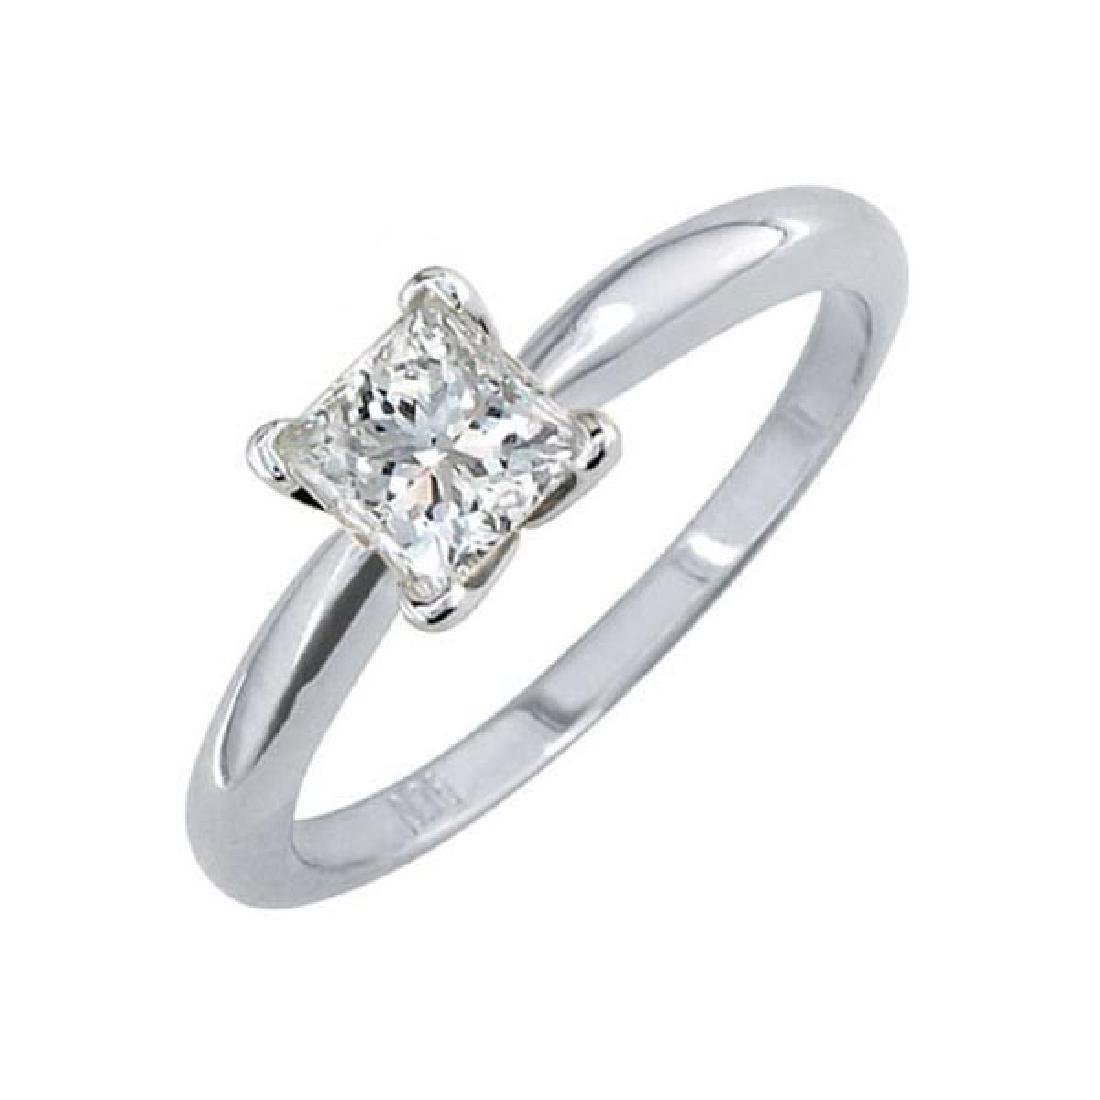 Certified 0.73 CTW Princess Diamond Solitaire 14k Ring